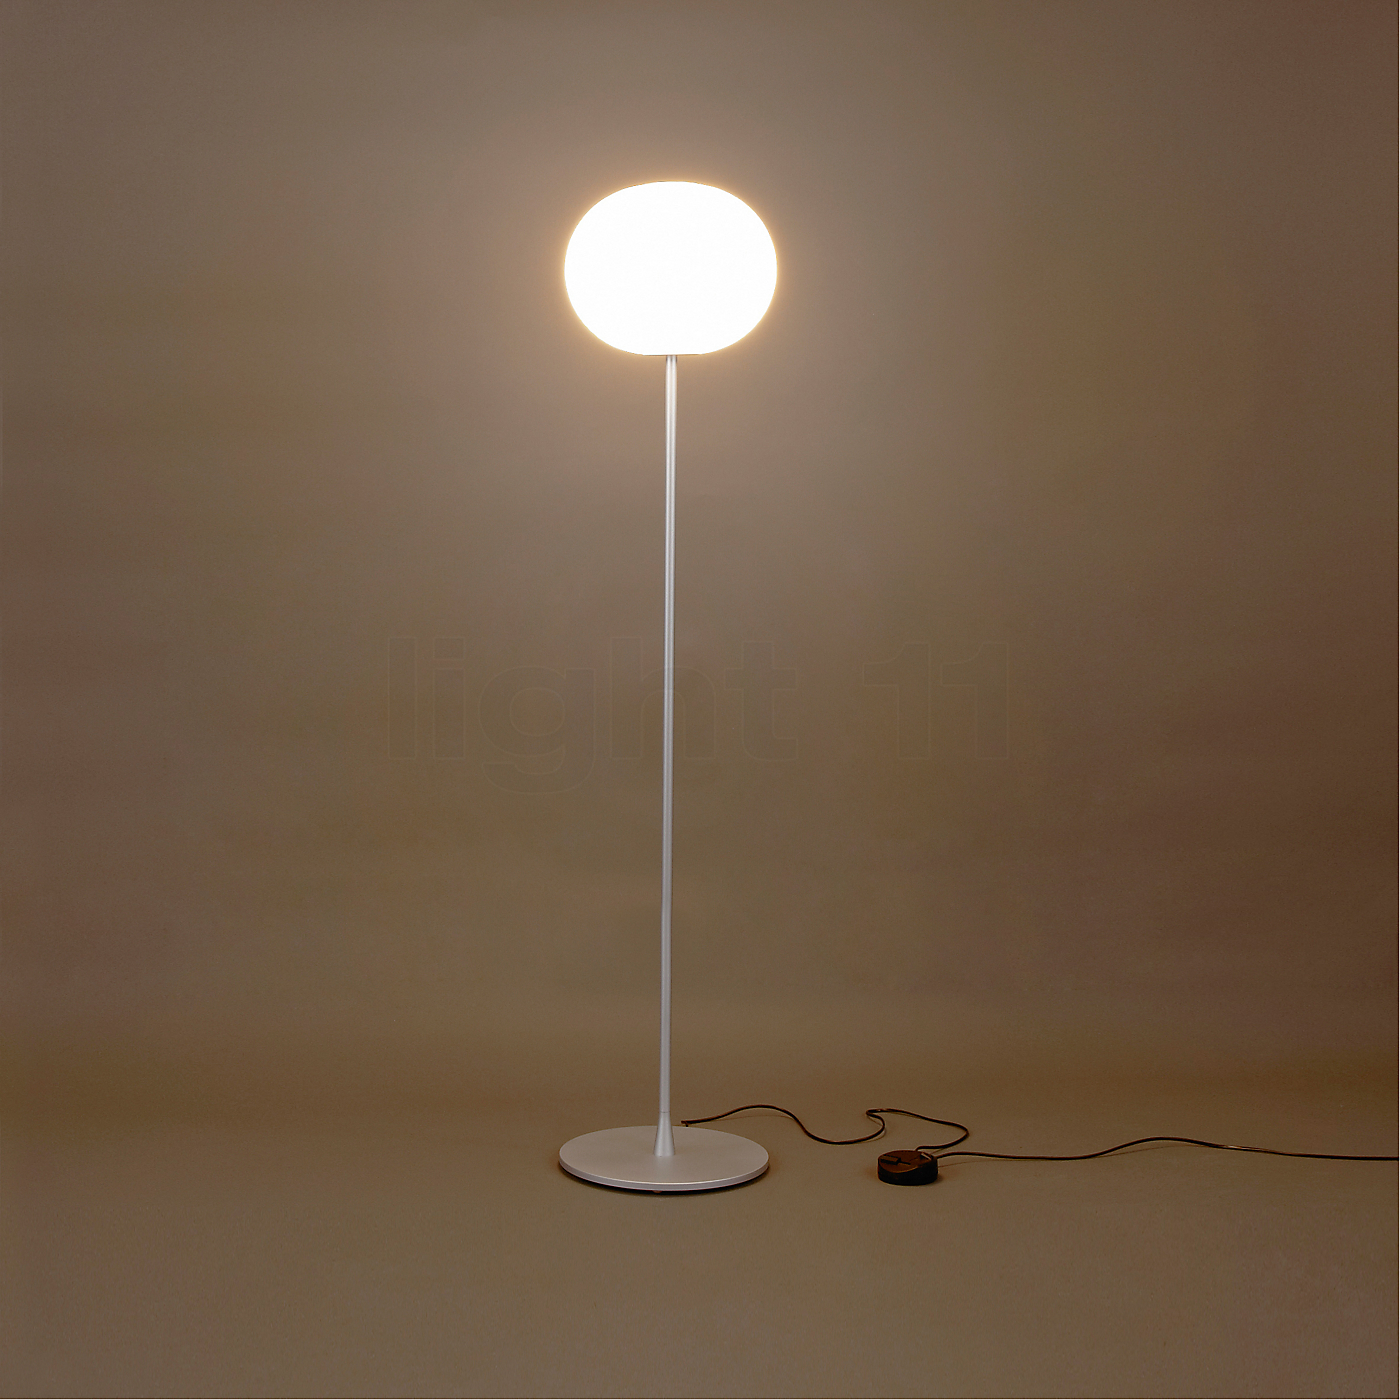 flos glo ball f2 floor lamps buy at. Black Bedroom Furniture Sets. Home Design Ideas